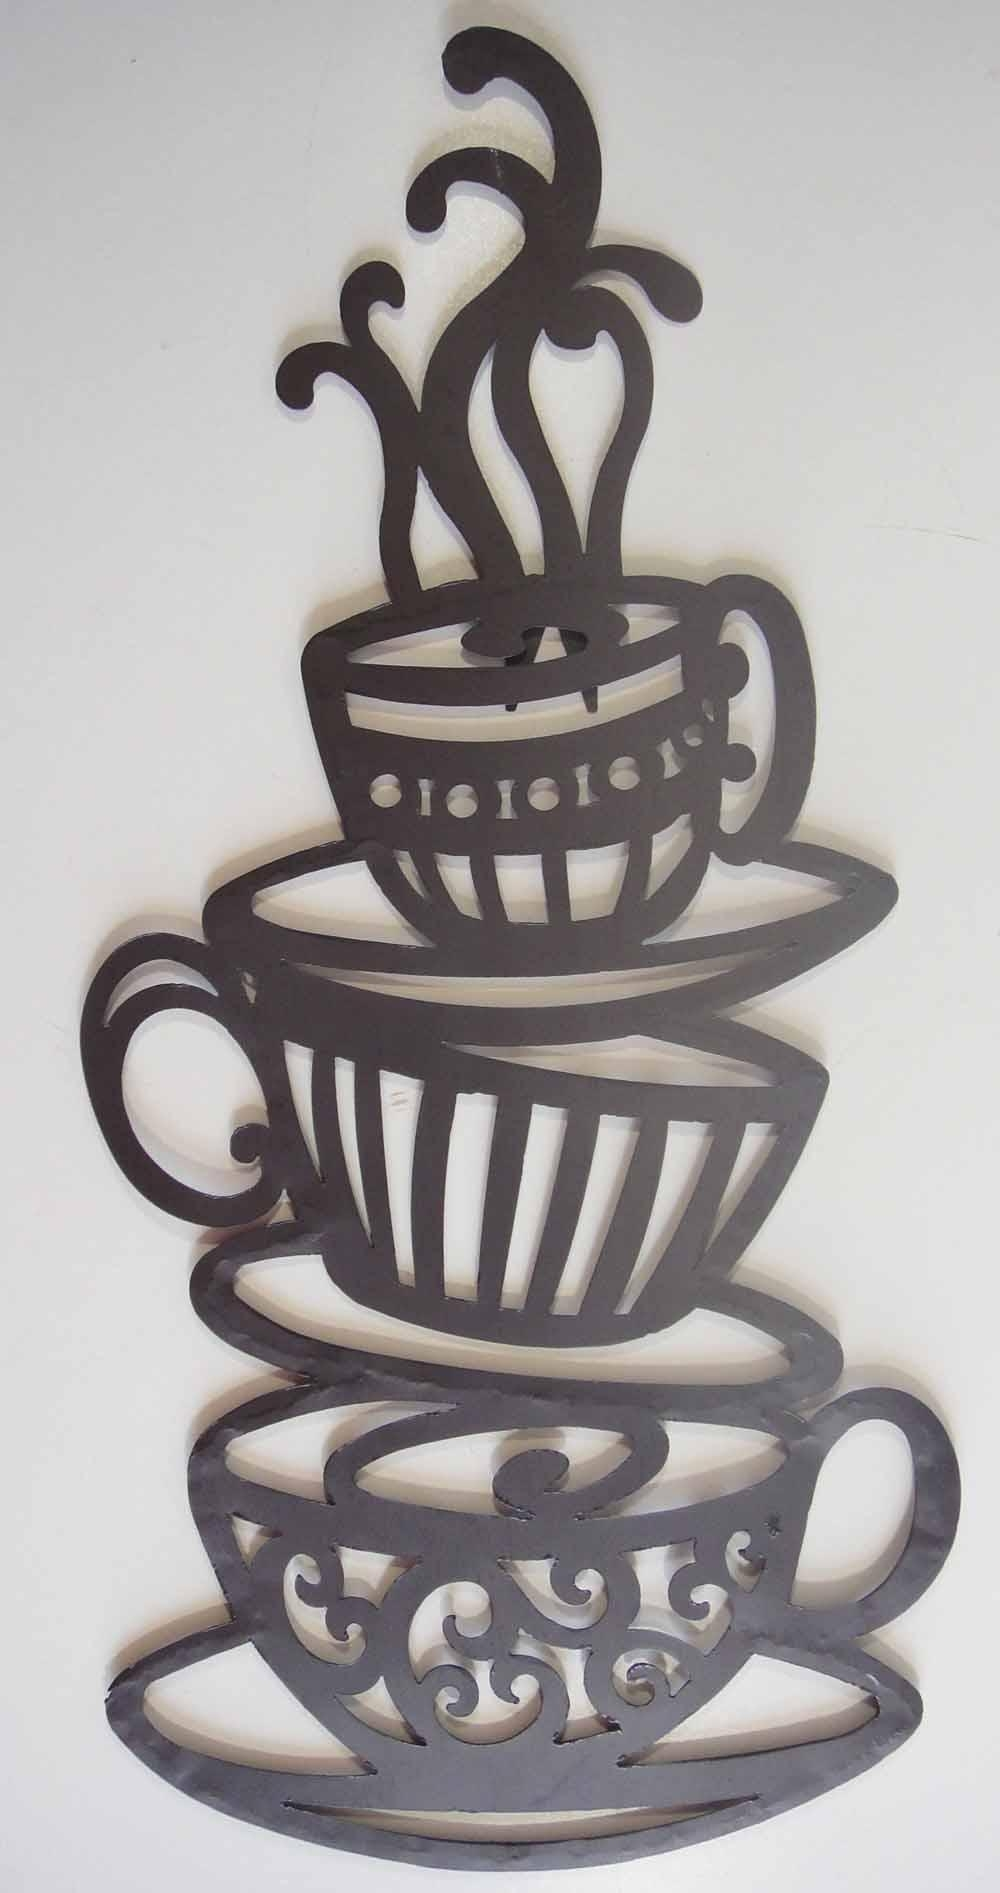 Decoration. Coffee Wall Art - Home Decor Ideas with regard to Metal Coffee Cup Wall Art